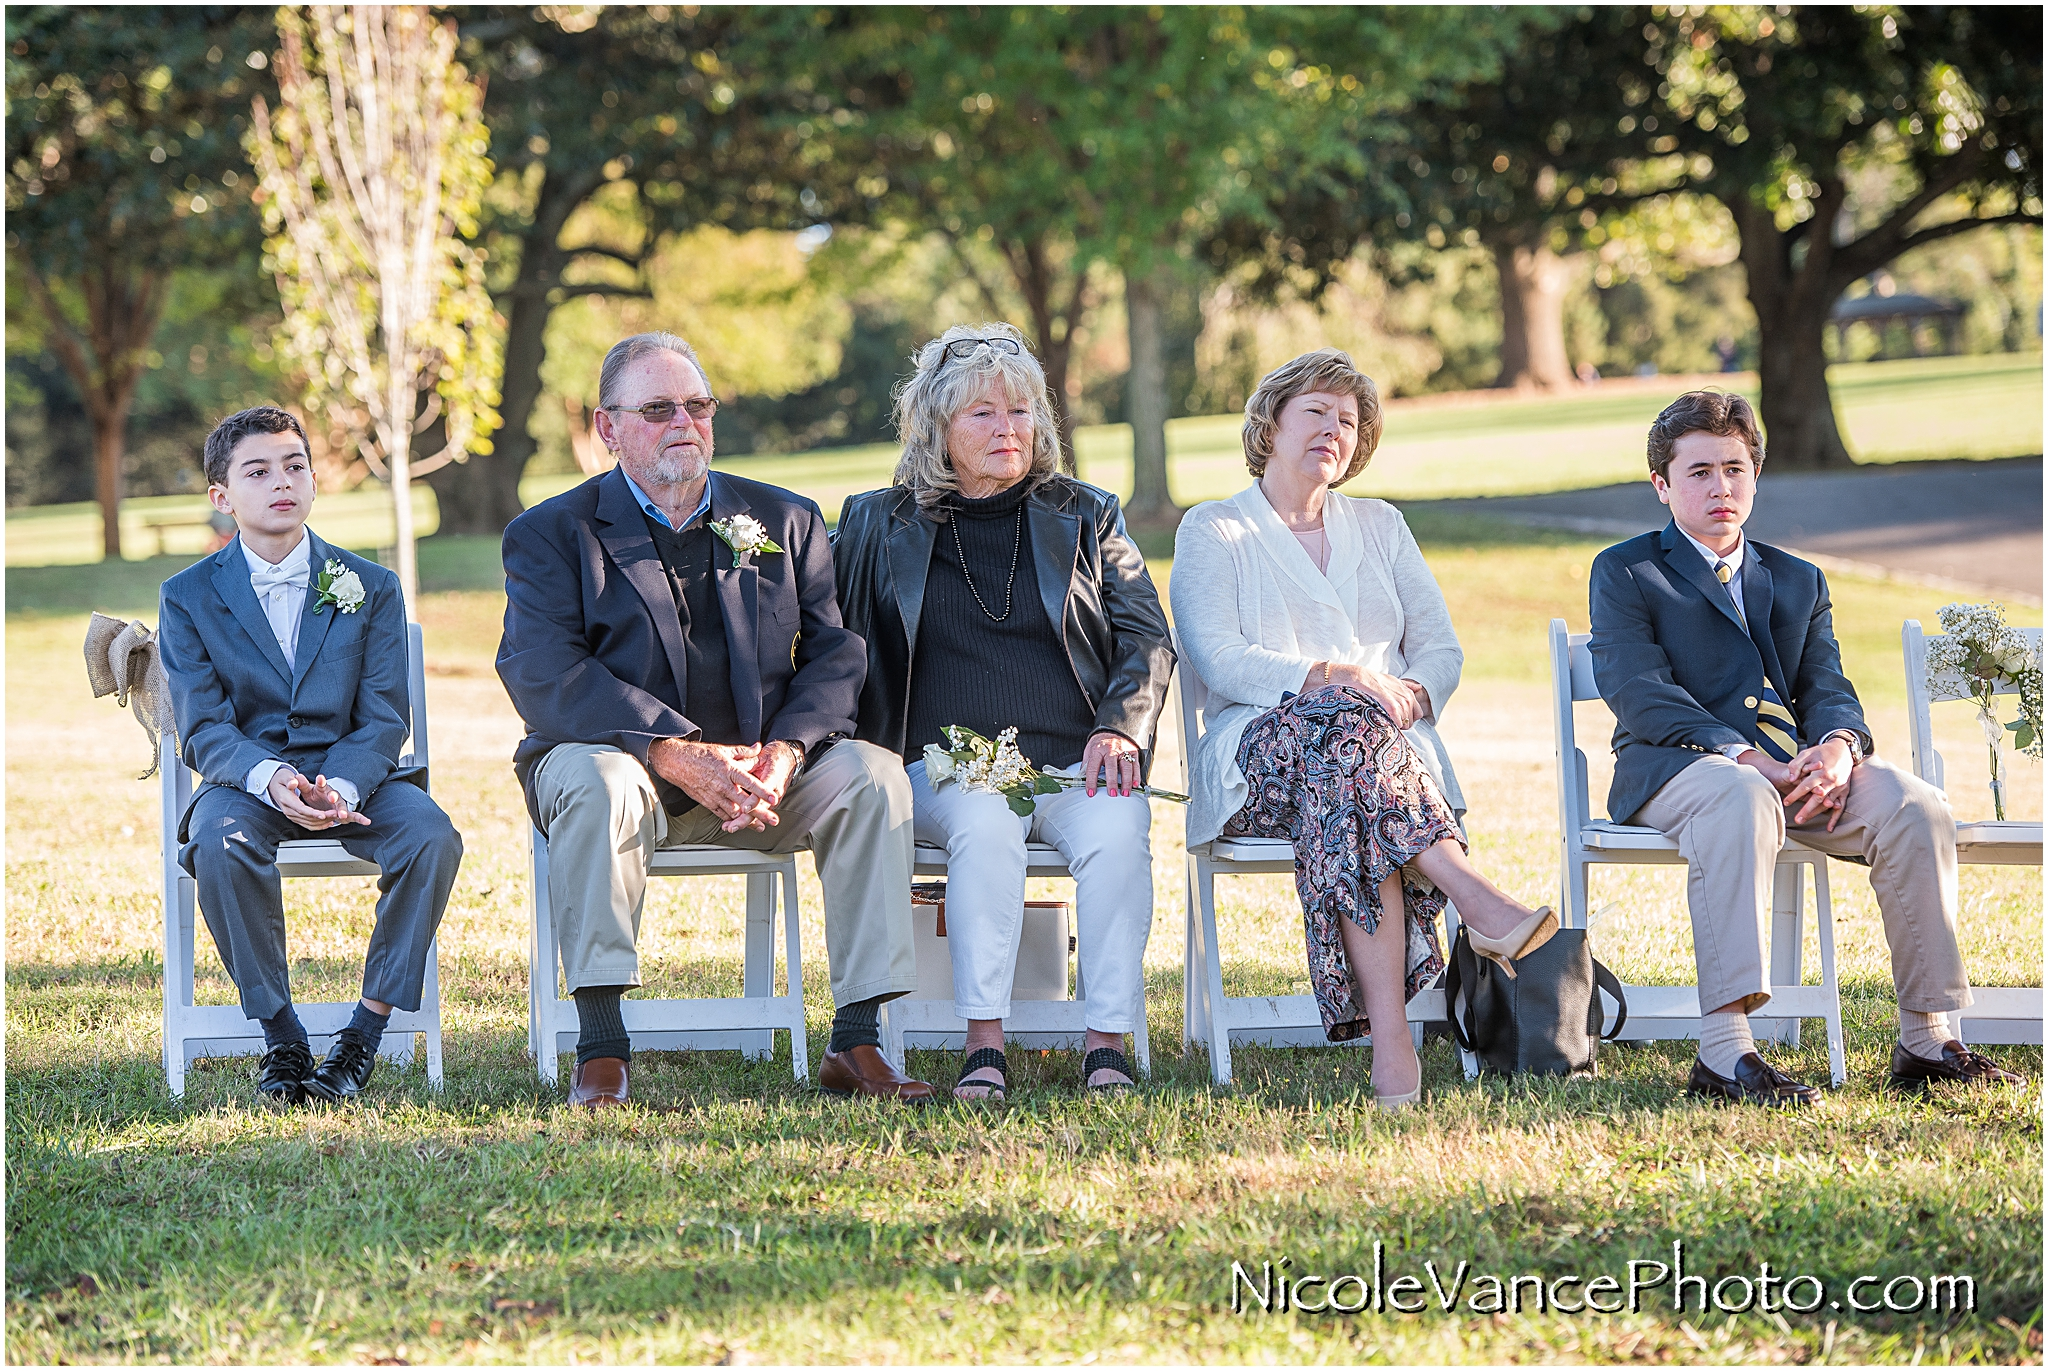 Guests enjoy the ceremony at Maymont Park in Richmond Virginia.